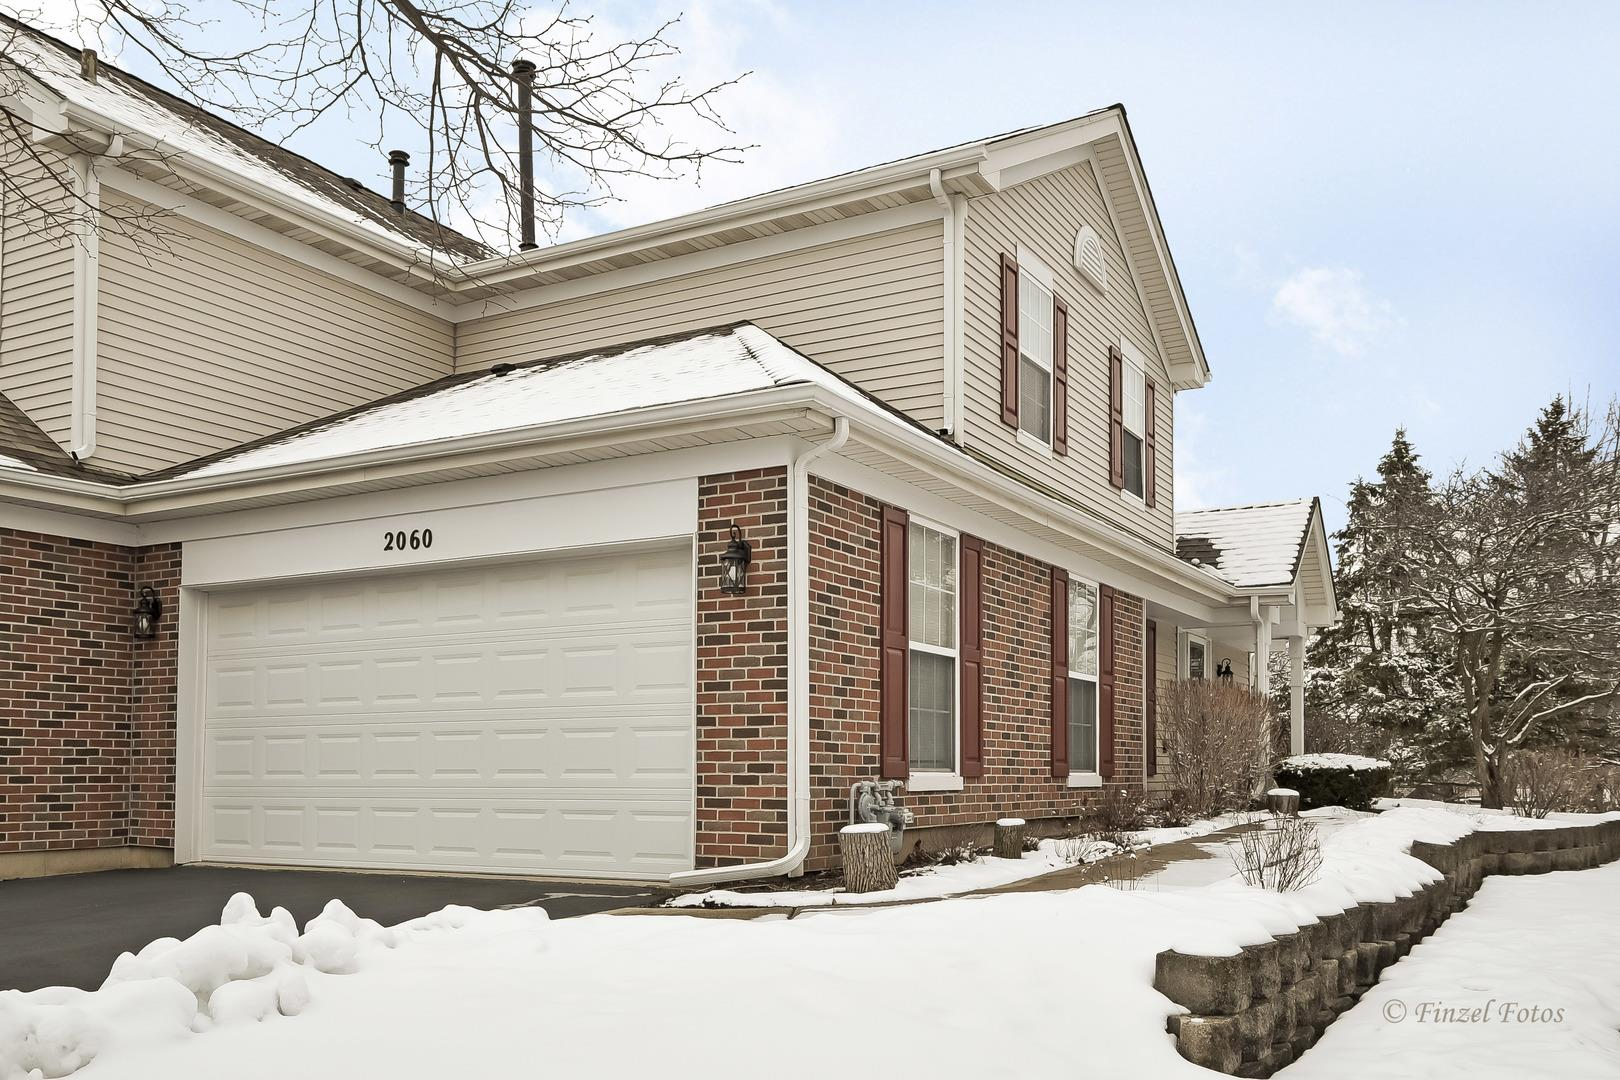 2060 Peach Tree Lane, Algonquin, IL 60102 - #: 10975994